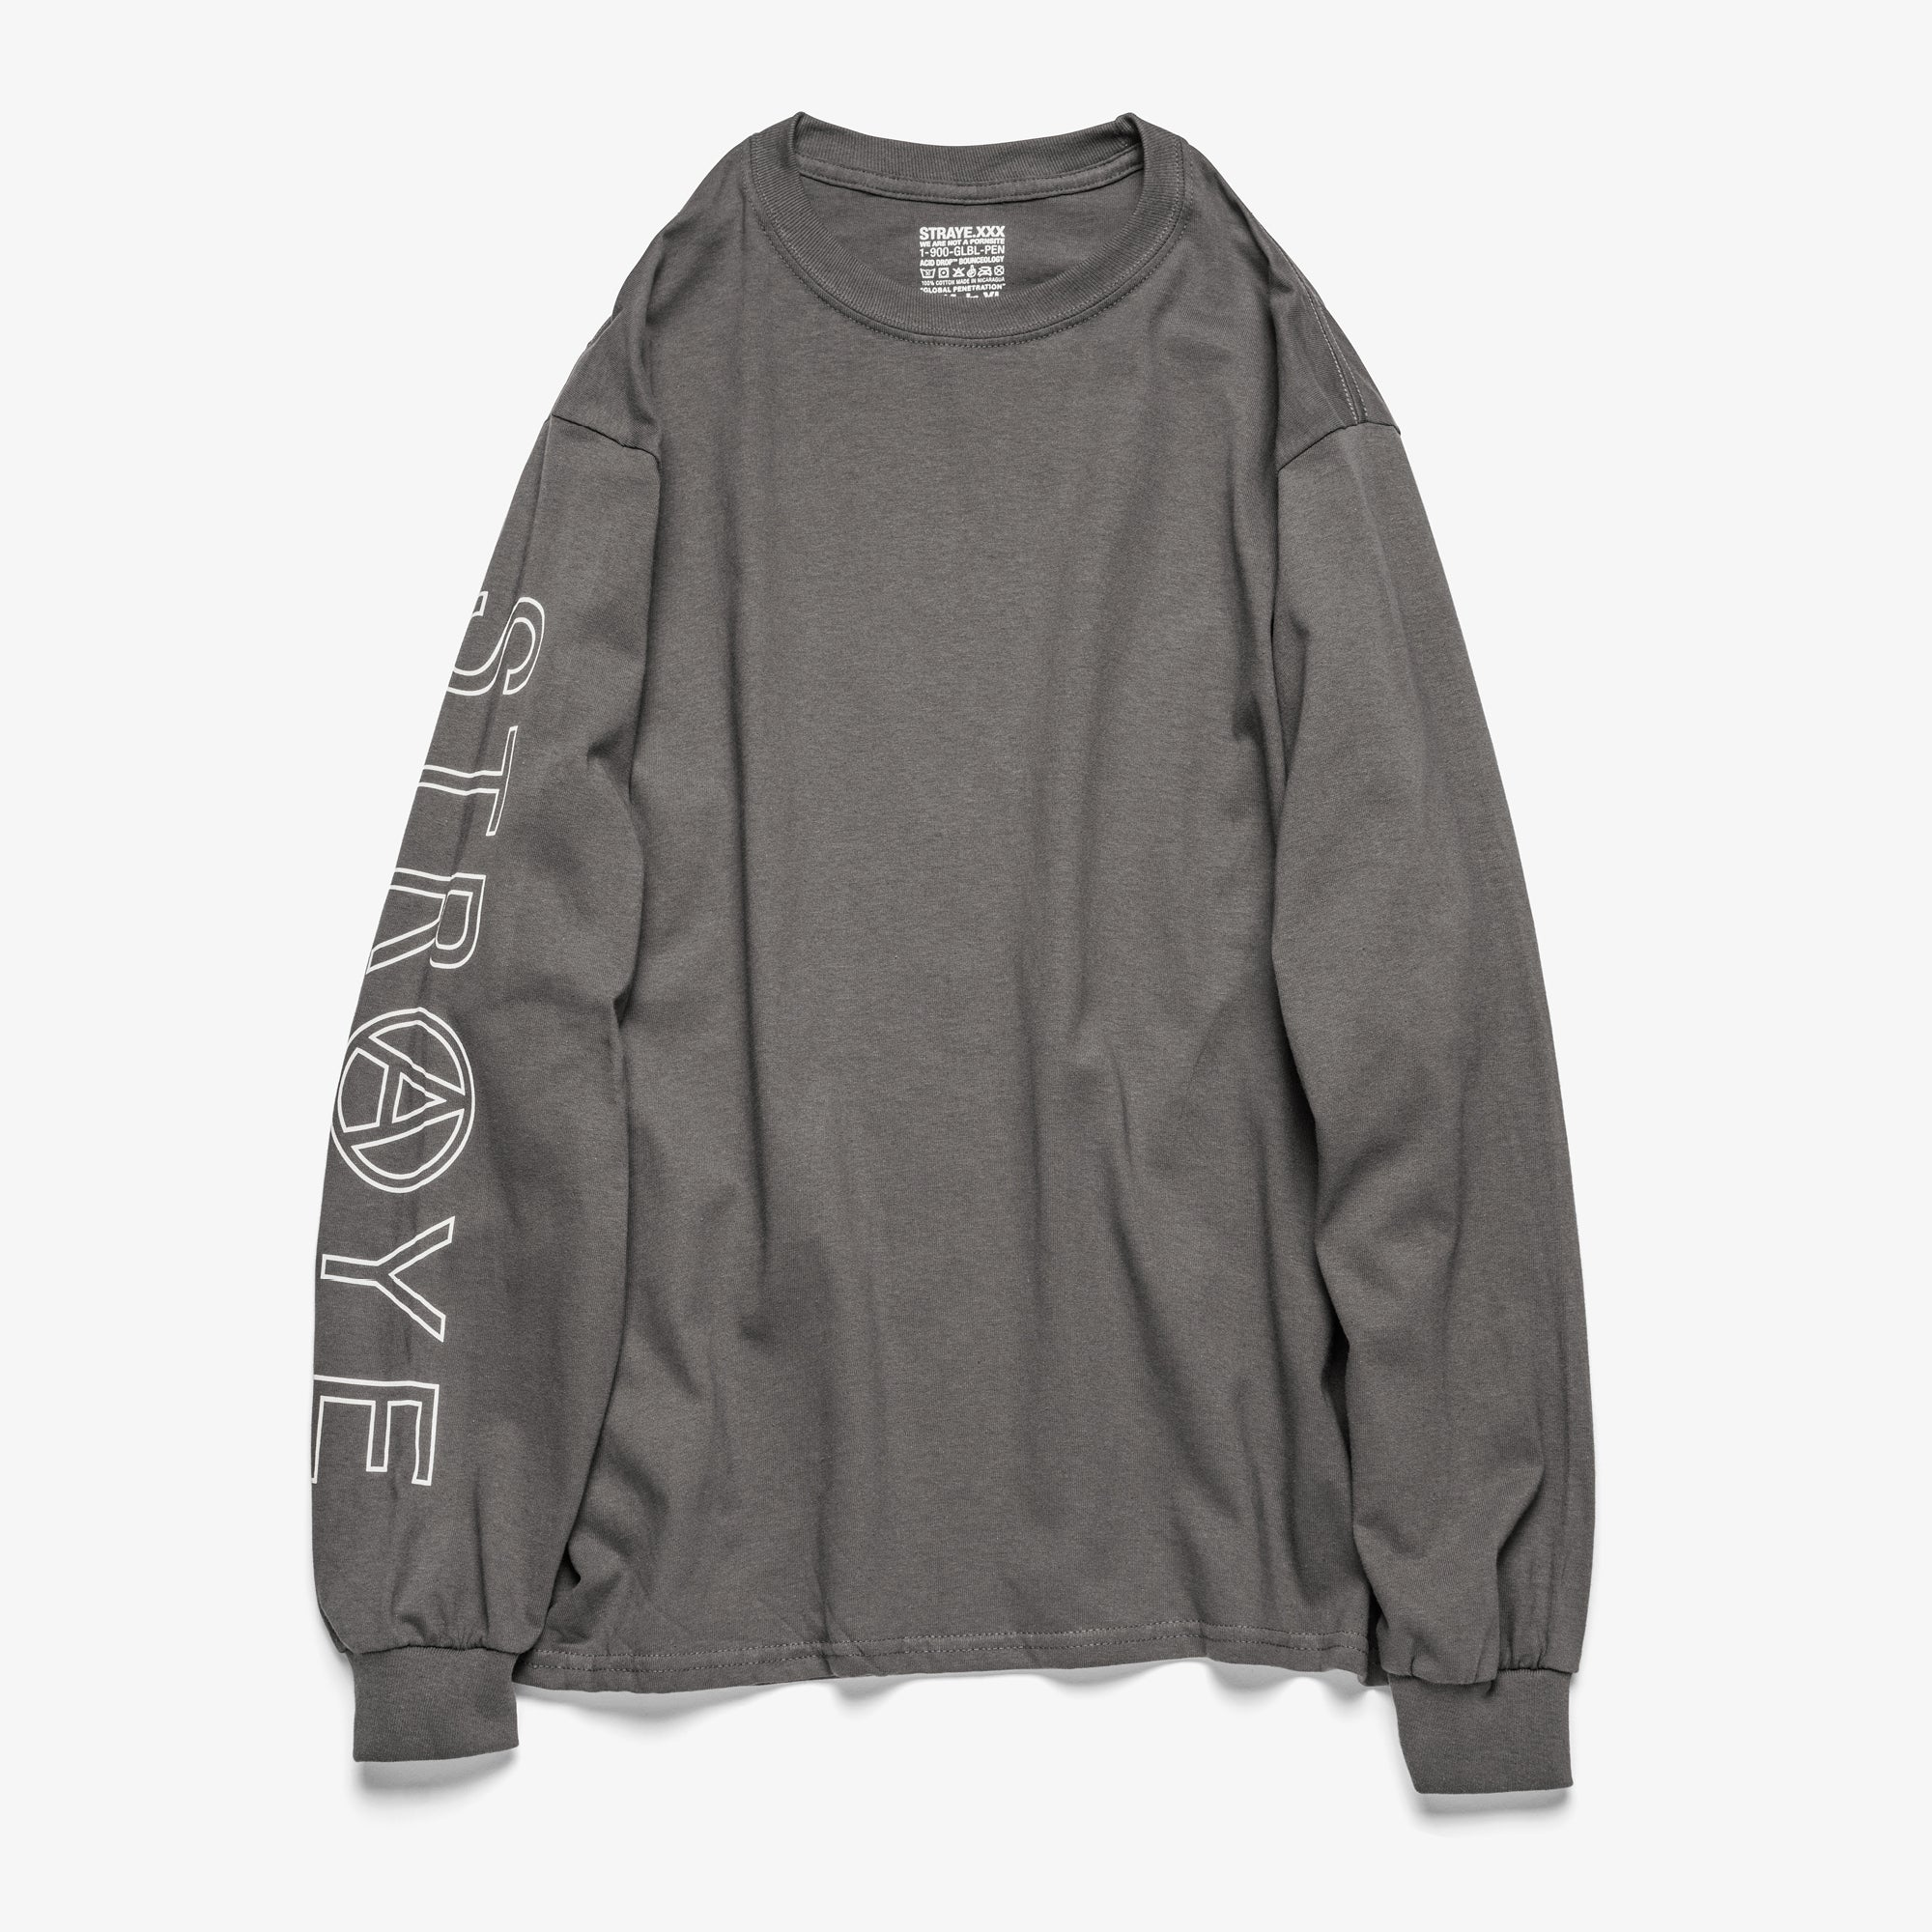 SUPER TRAP L/S TEE - CARBON